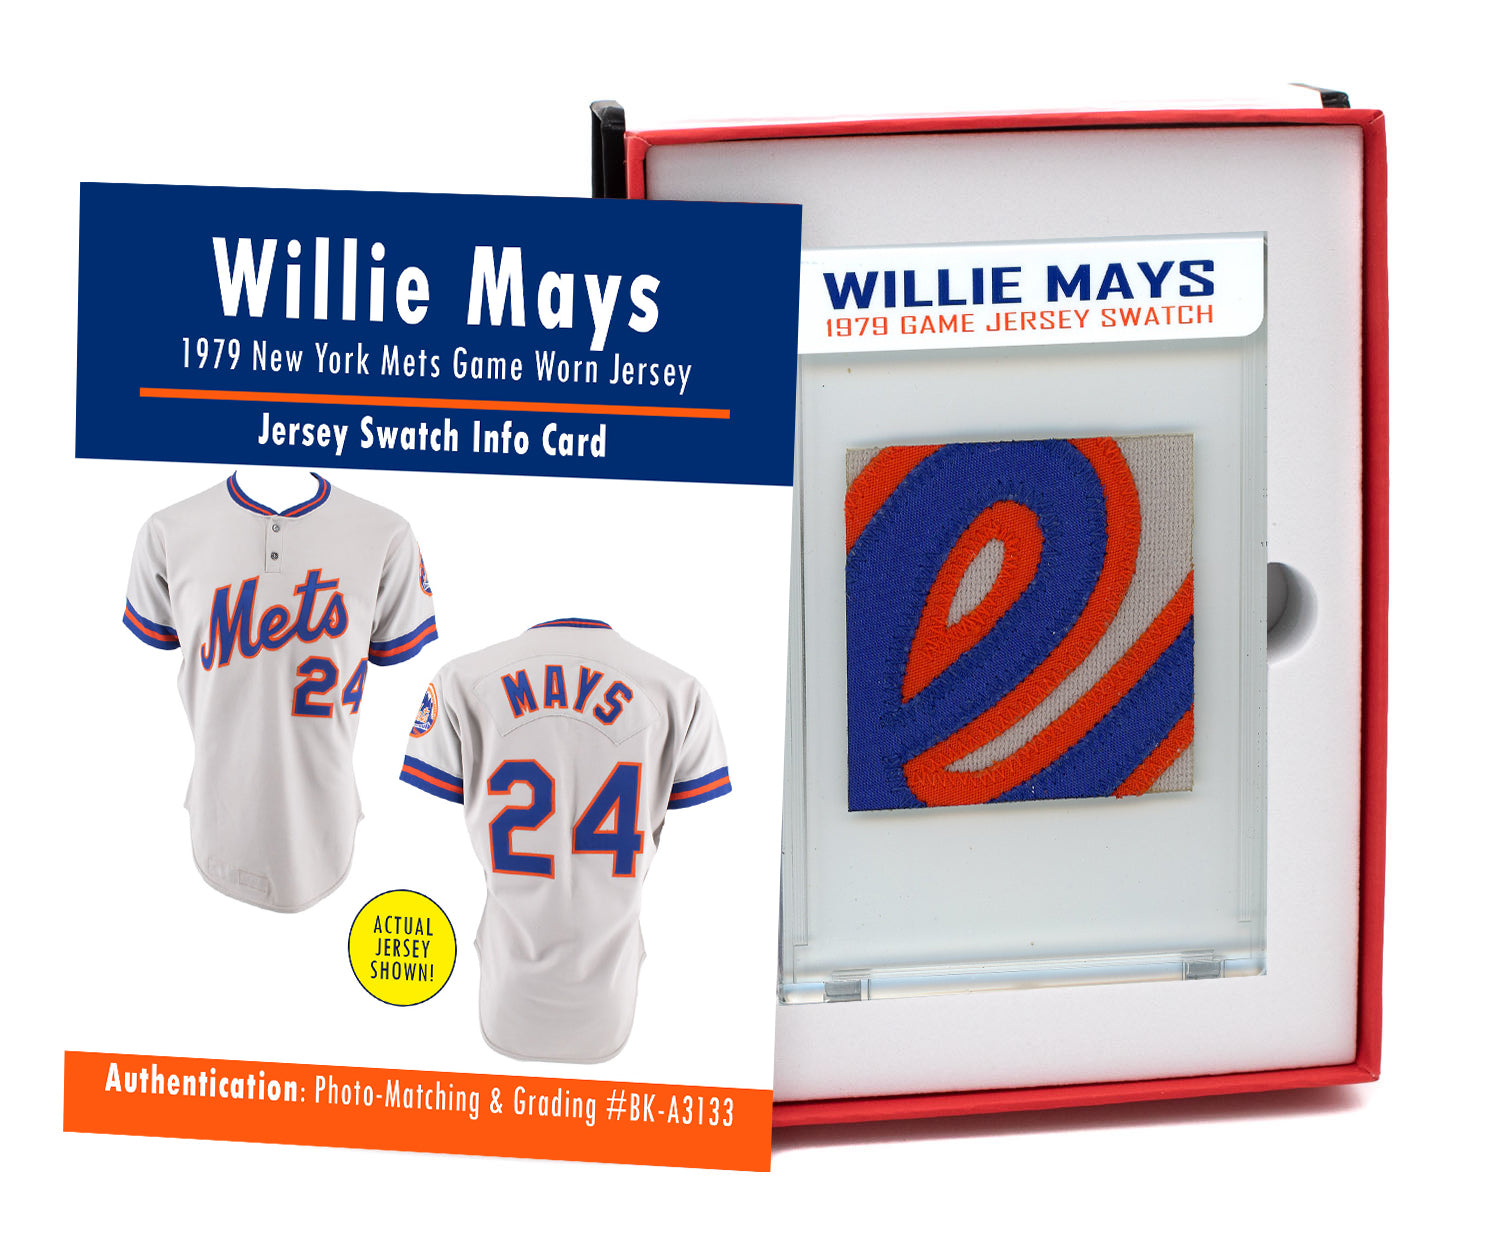 WILLIE MAYS 1979 METS GAME WORN JERSEY MYSTERY SWATCH BOX!